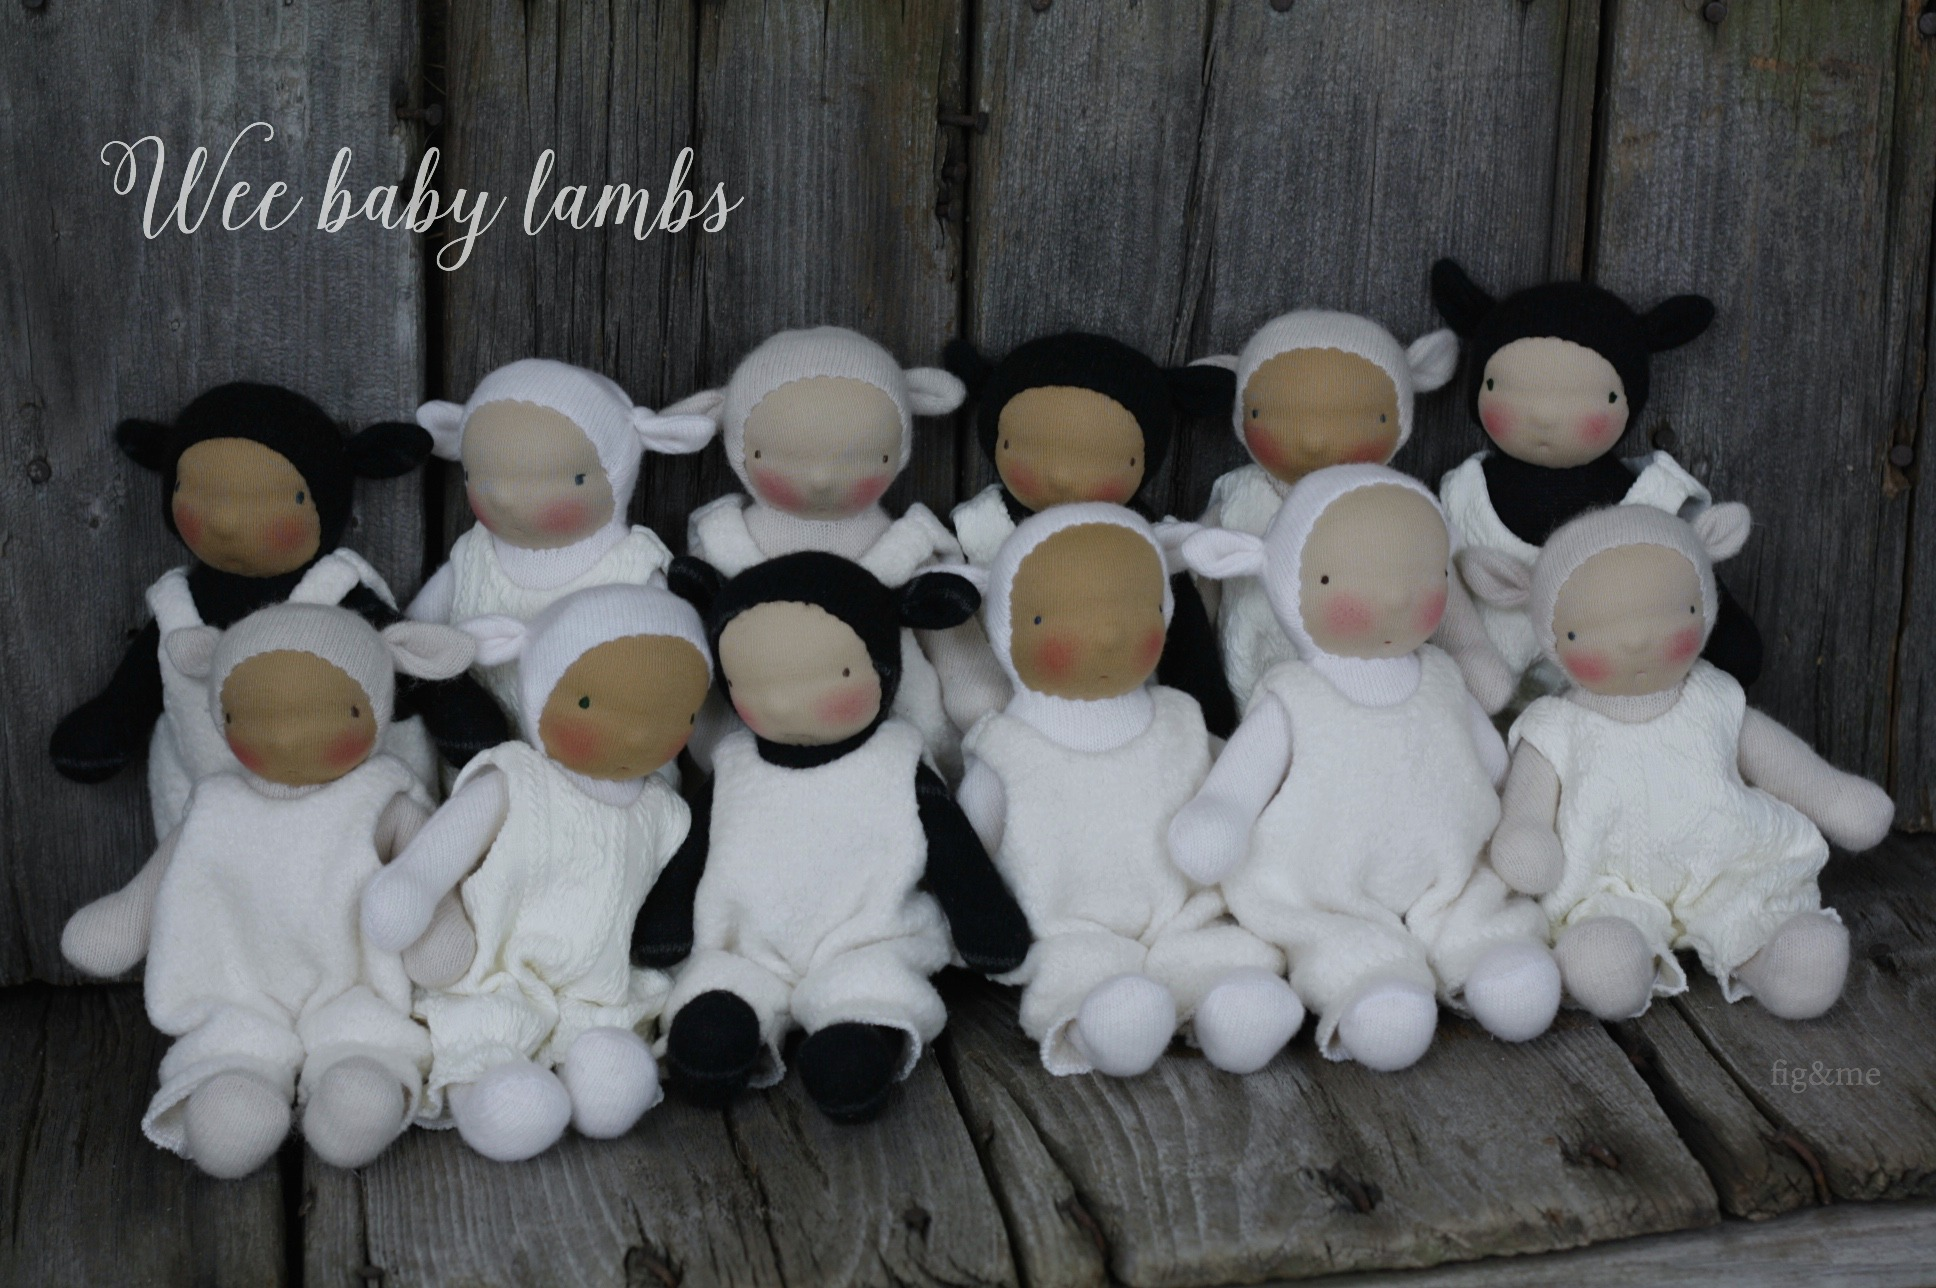 Wee Baby lambs by fig and me